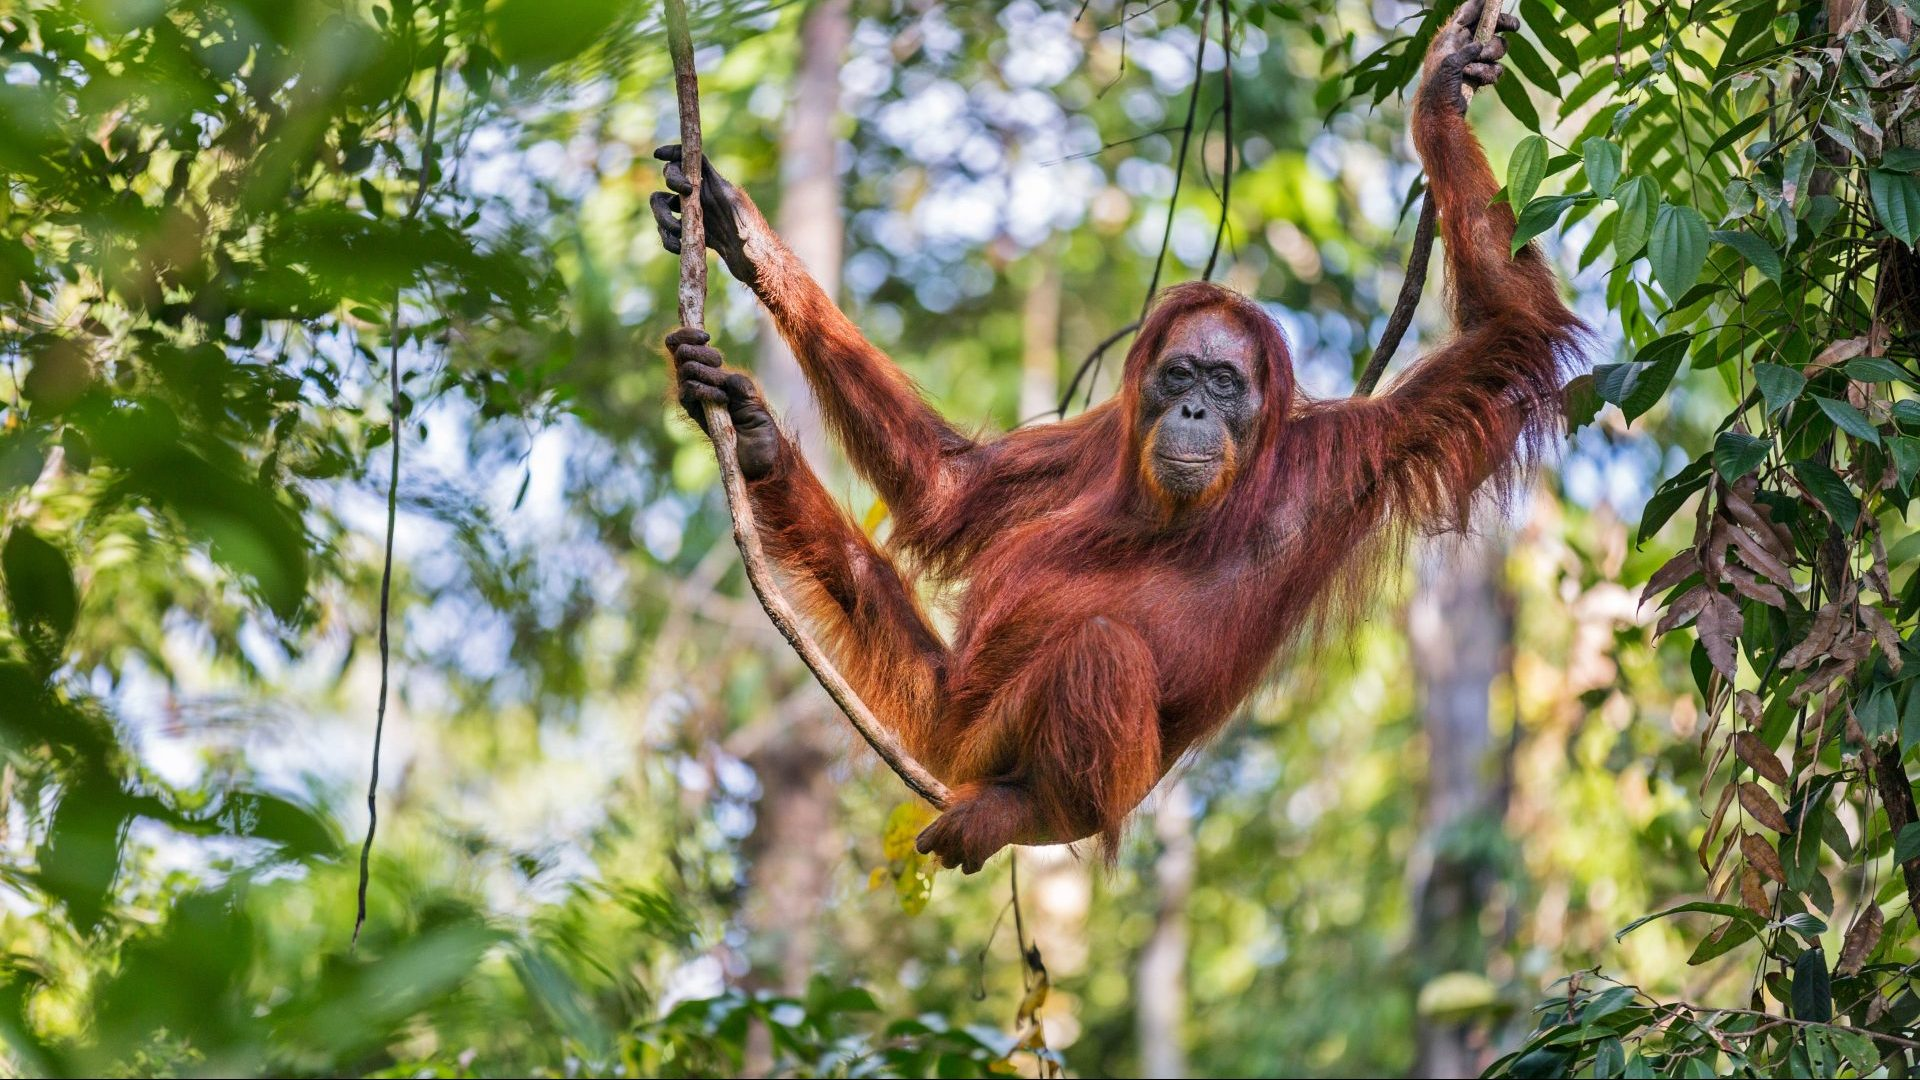 A female Bornean orangutan hanging from a tree, Kalimantan, Borneo with GeoEx